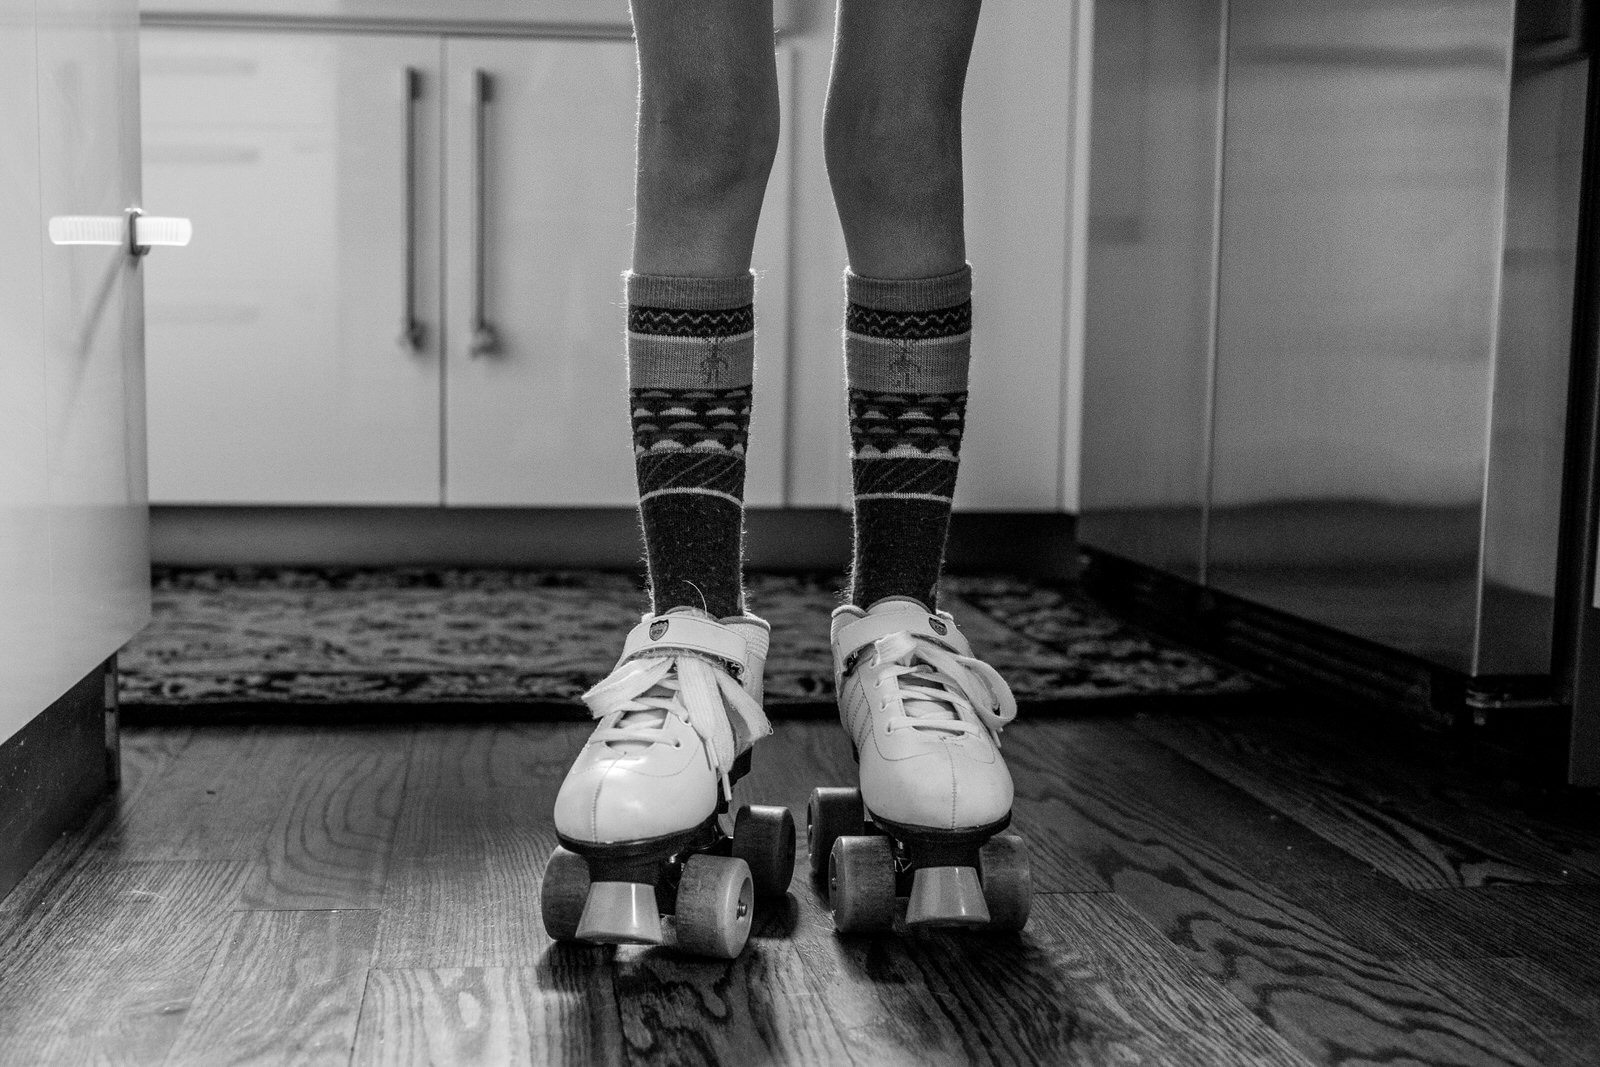 knobby knees and old fashioned roller-skates